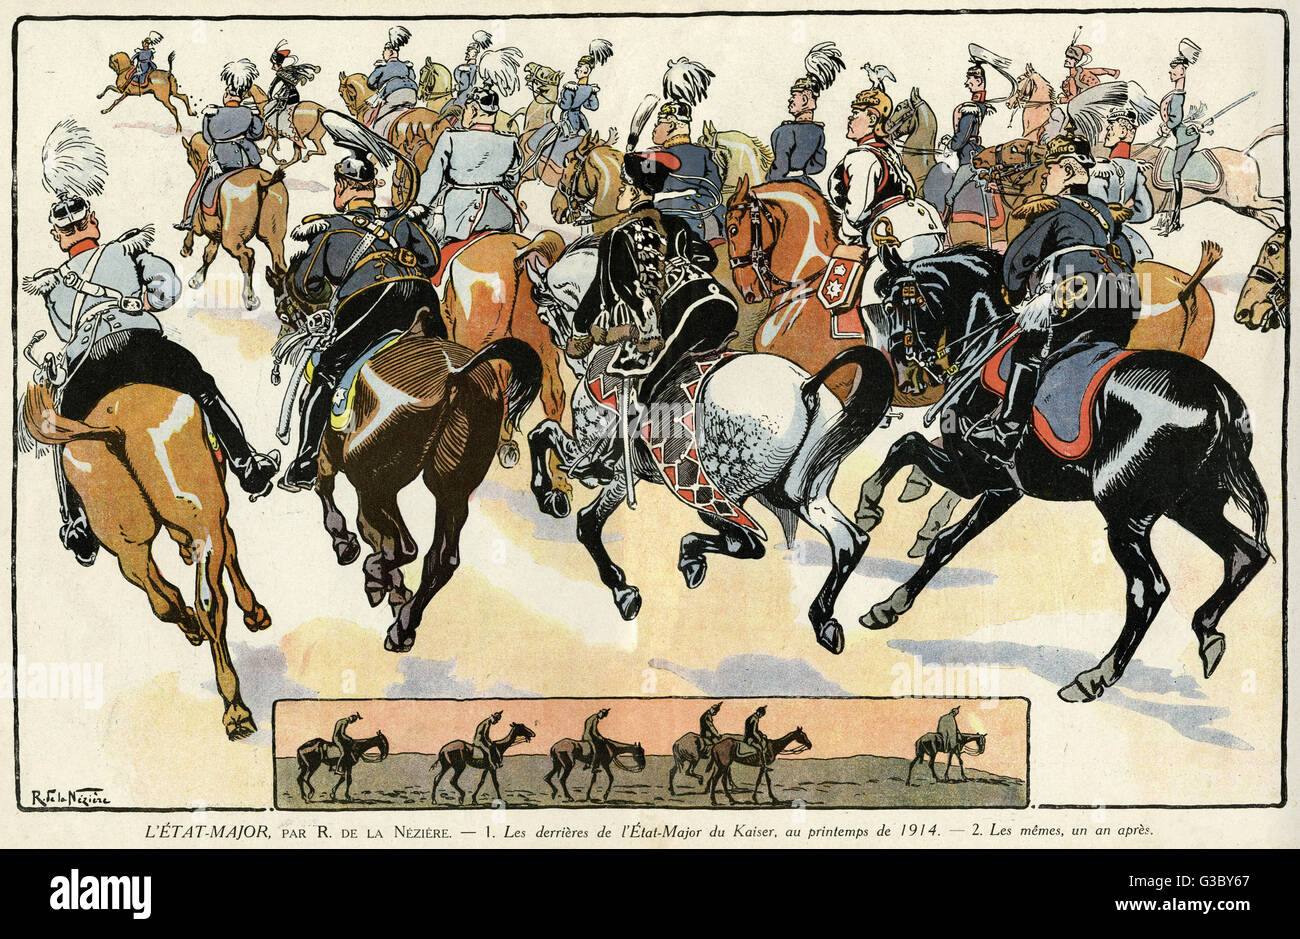 Cartoon, the German military staff, looking formidable on horseback, in the spring of 1914 and a year later.    - Stock Image